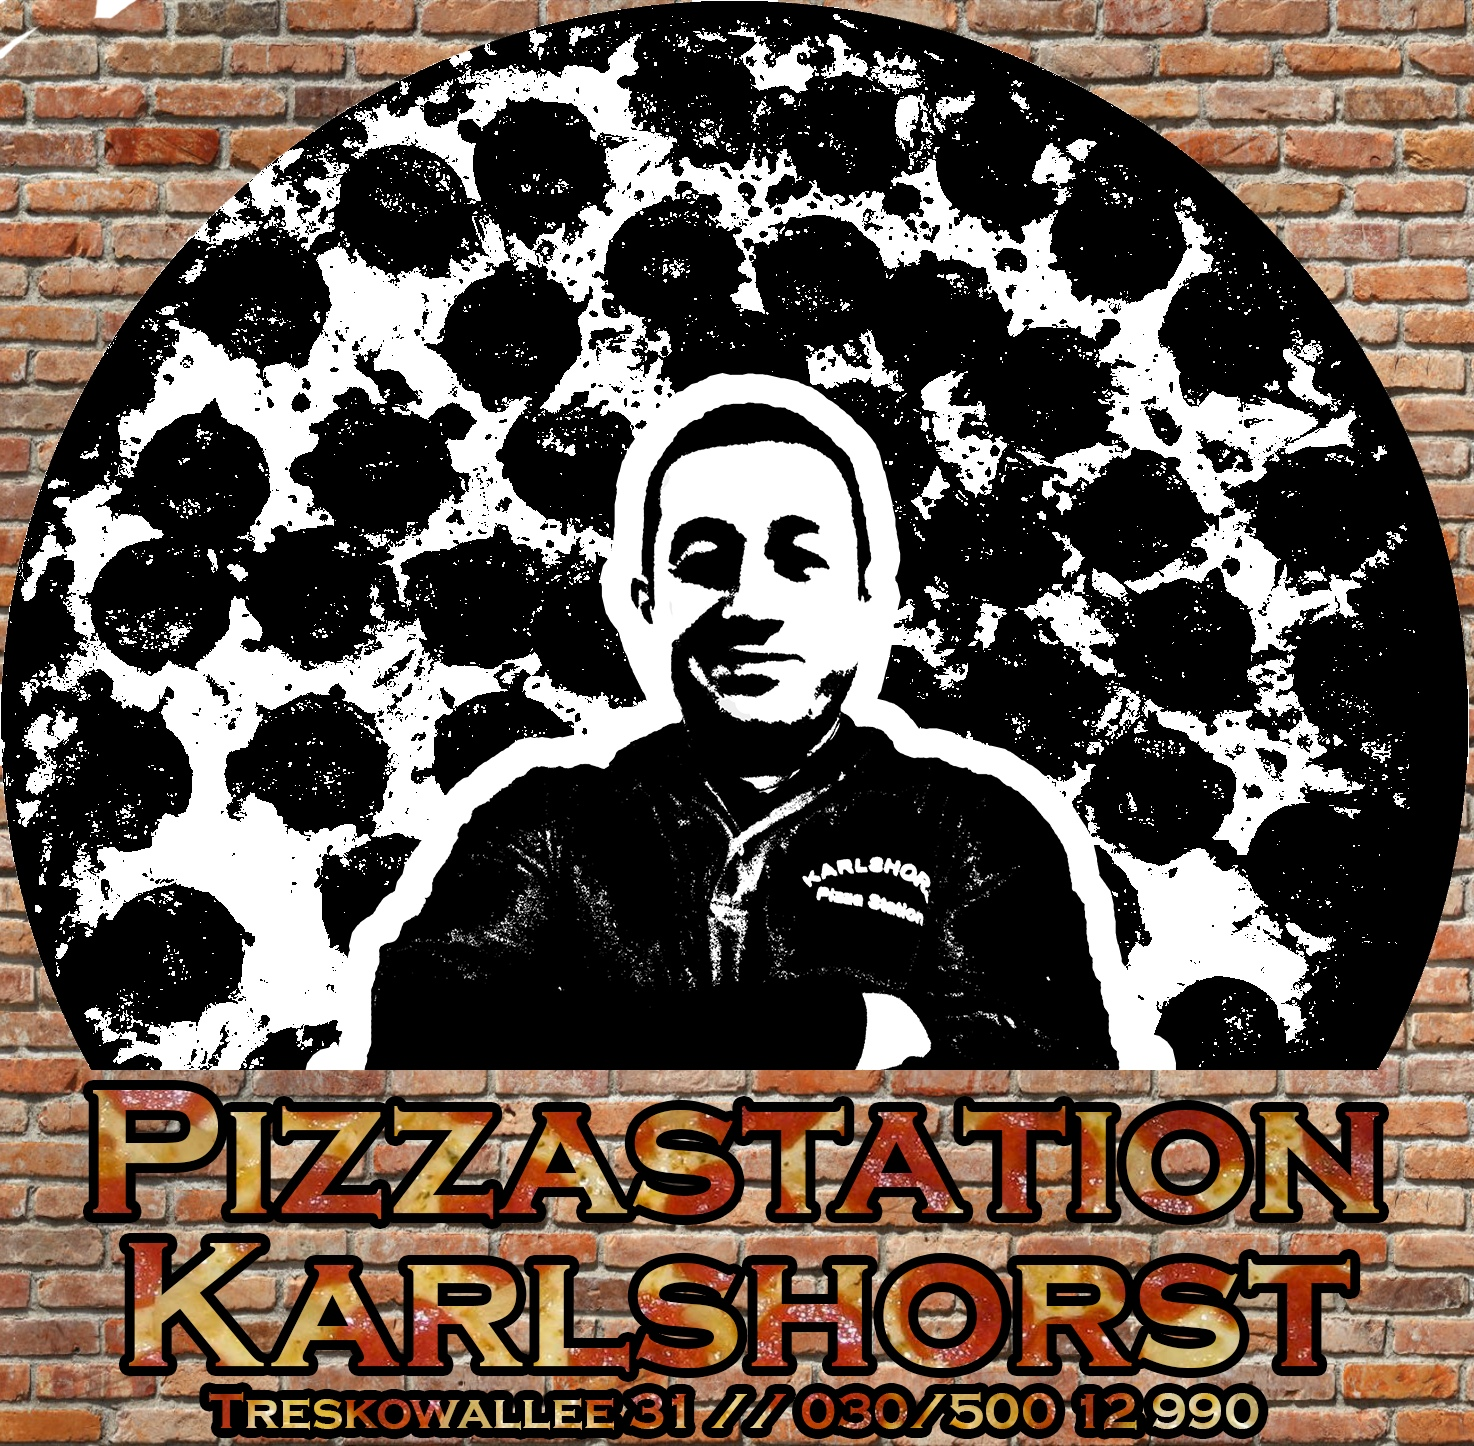 Pizzastation Karlshorst